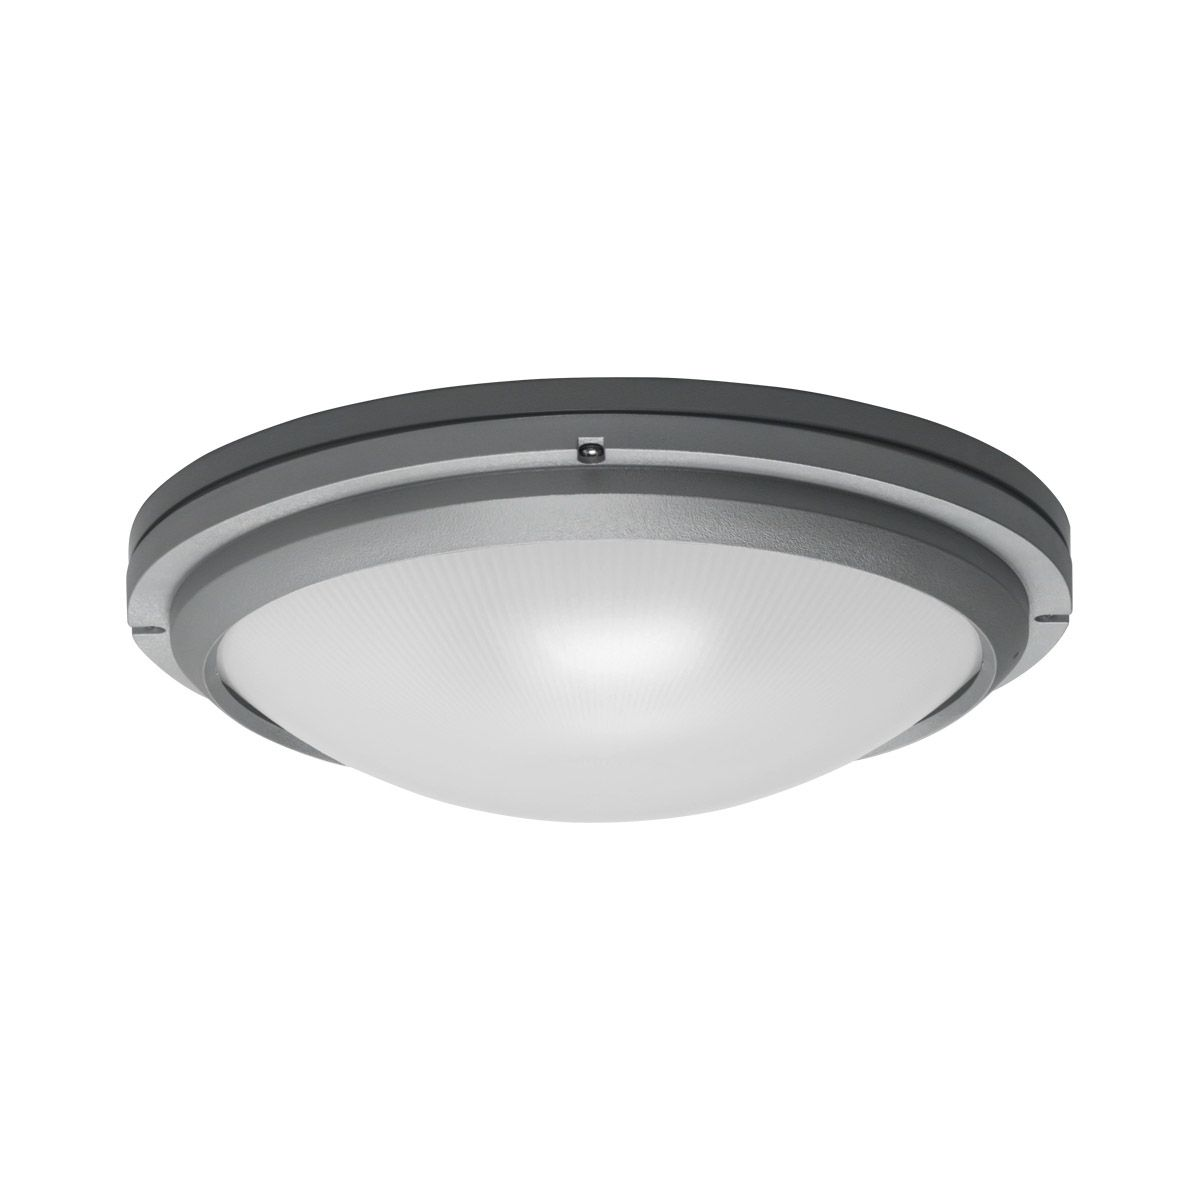 Brownlee Lighting Wet Listed Led Ceiling Or Wall Mount